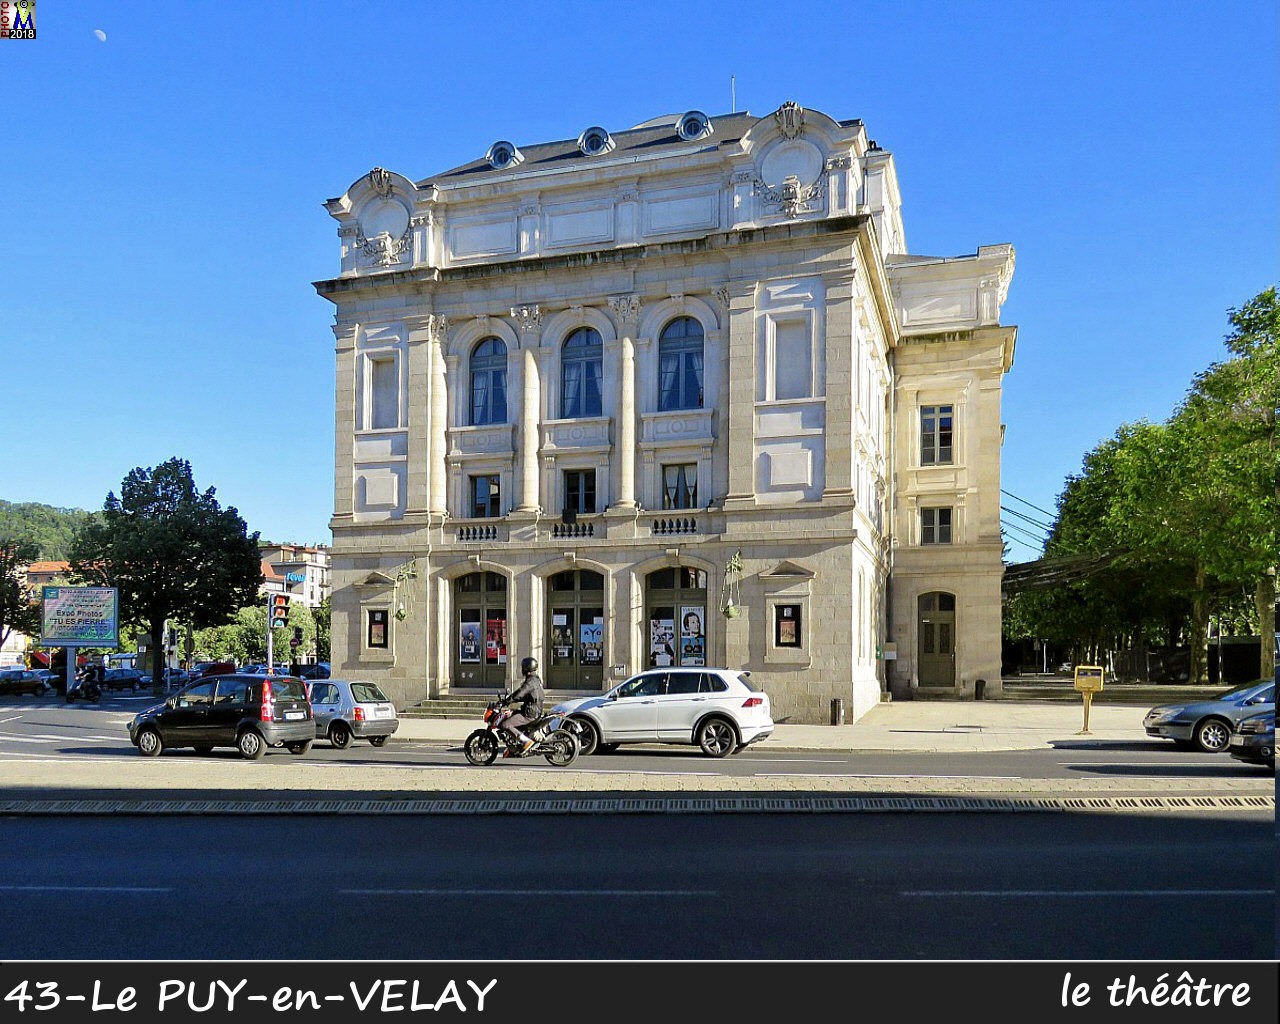 43PUY-EN-VELAY_theatre_102.jpg